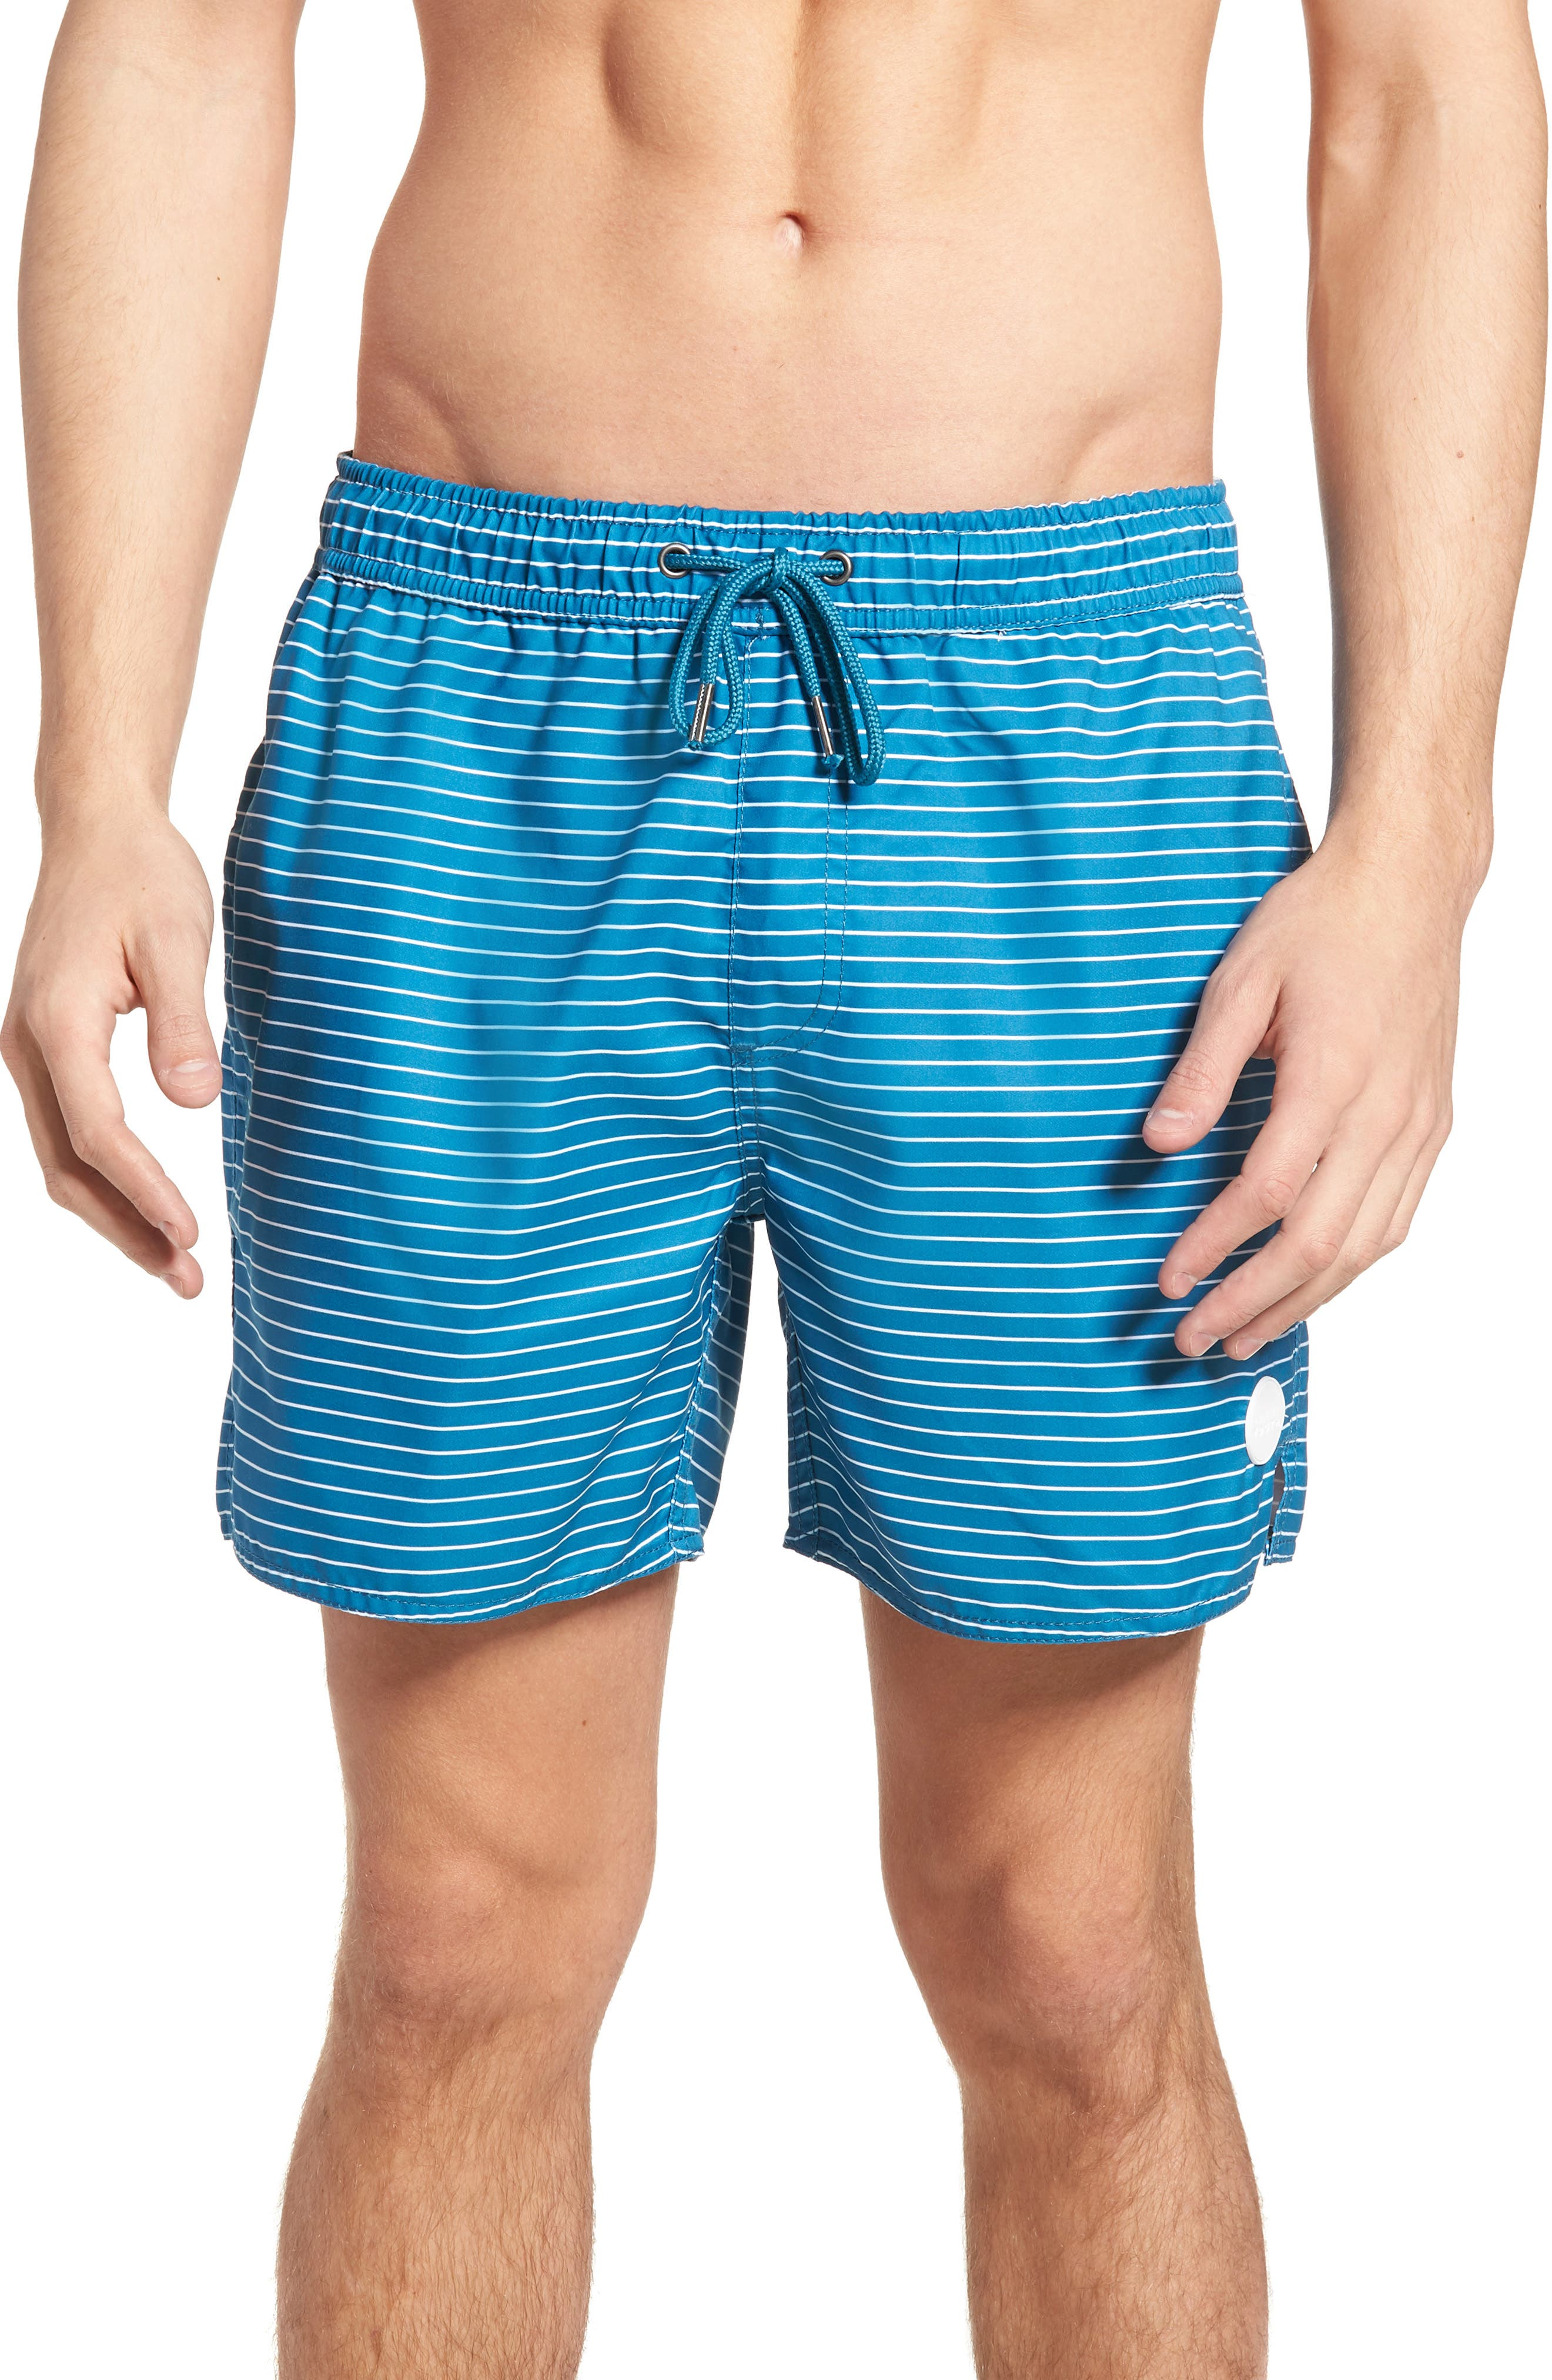 Boost Swim Trunks,                             Main thumbnail 1, color,                             TEAL